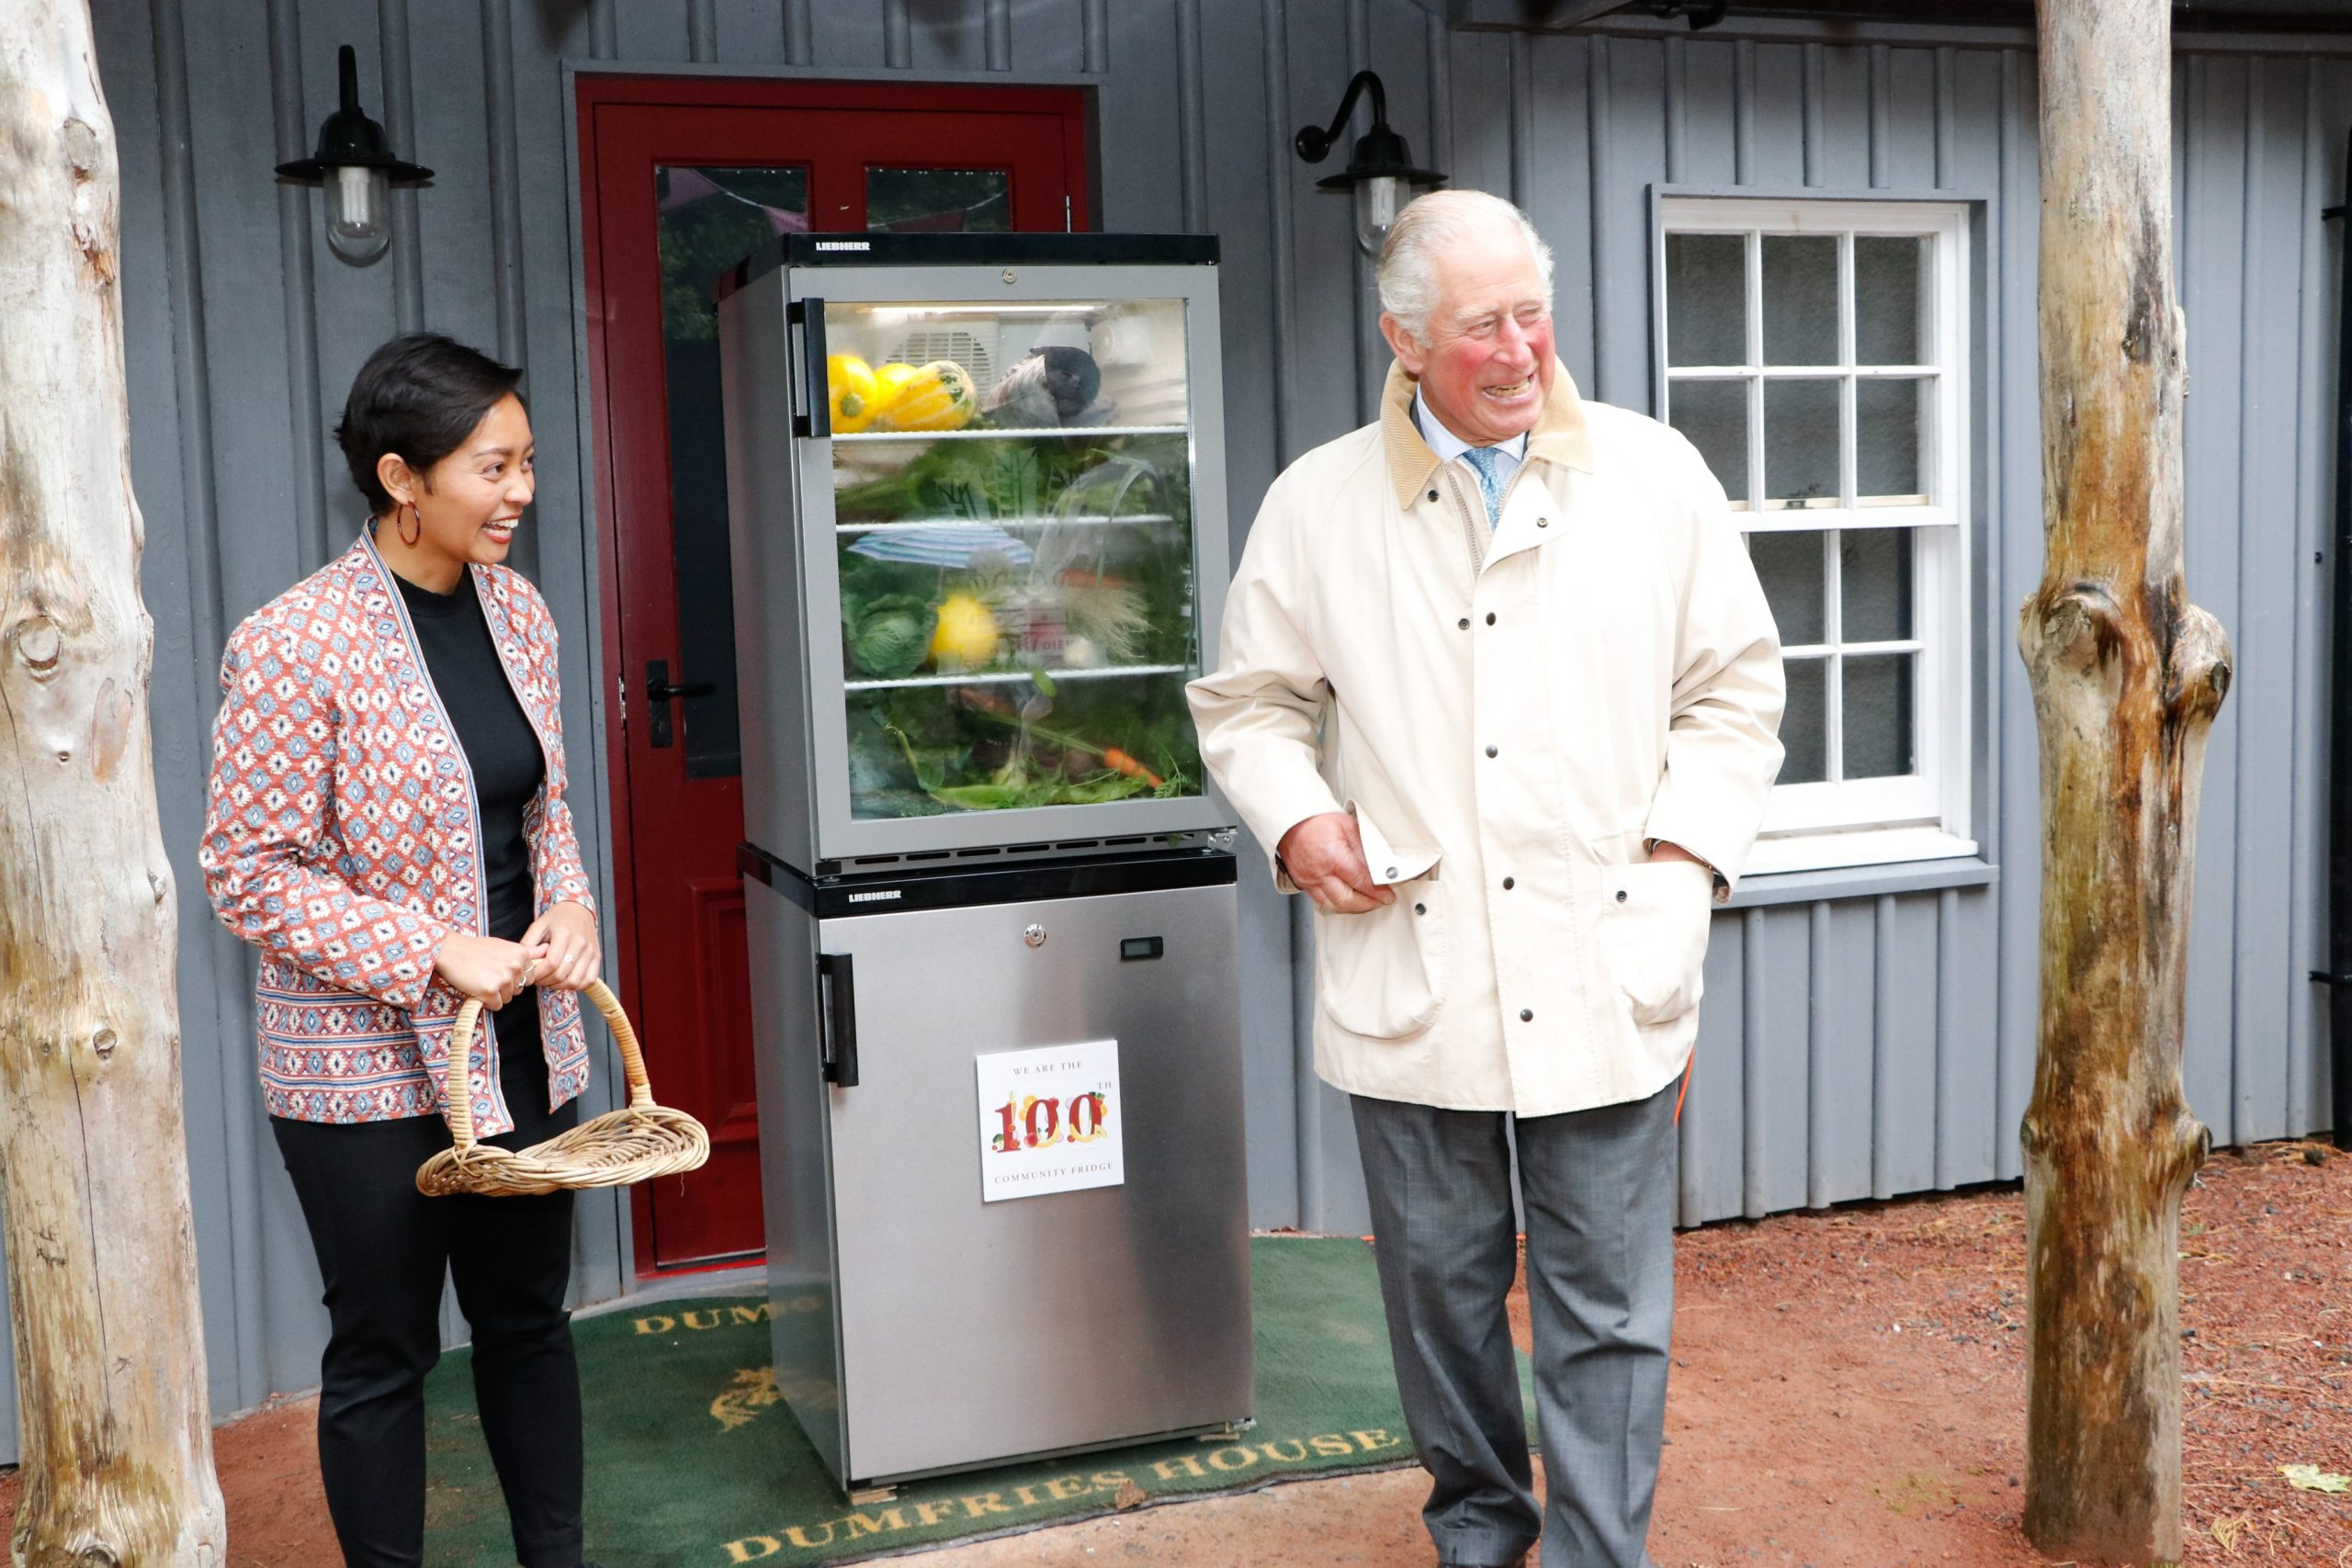 HRH The Prince of Wales opening the 100th Community Fridge